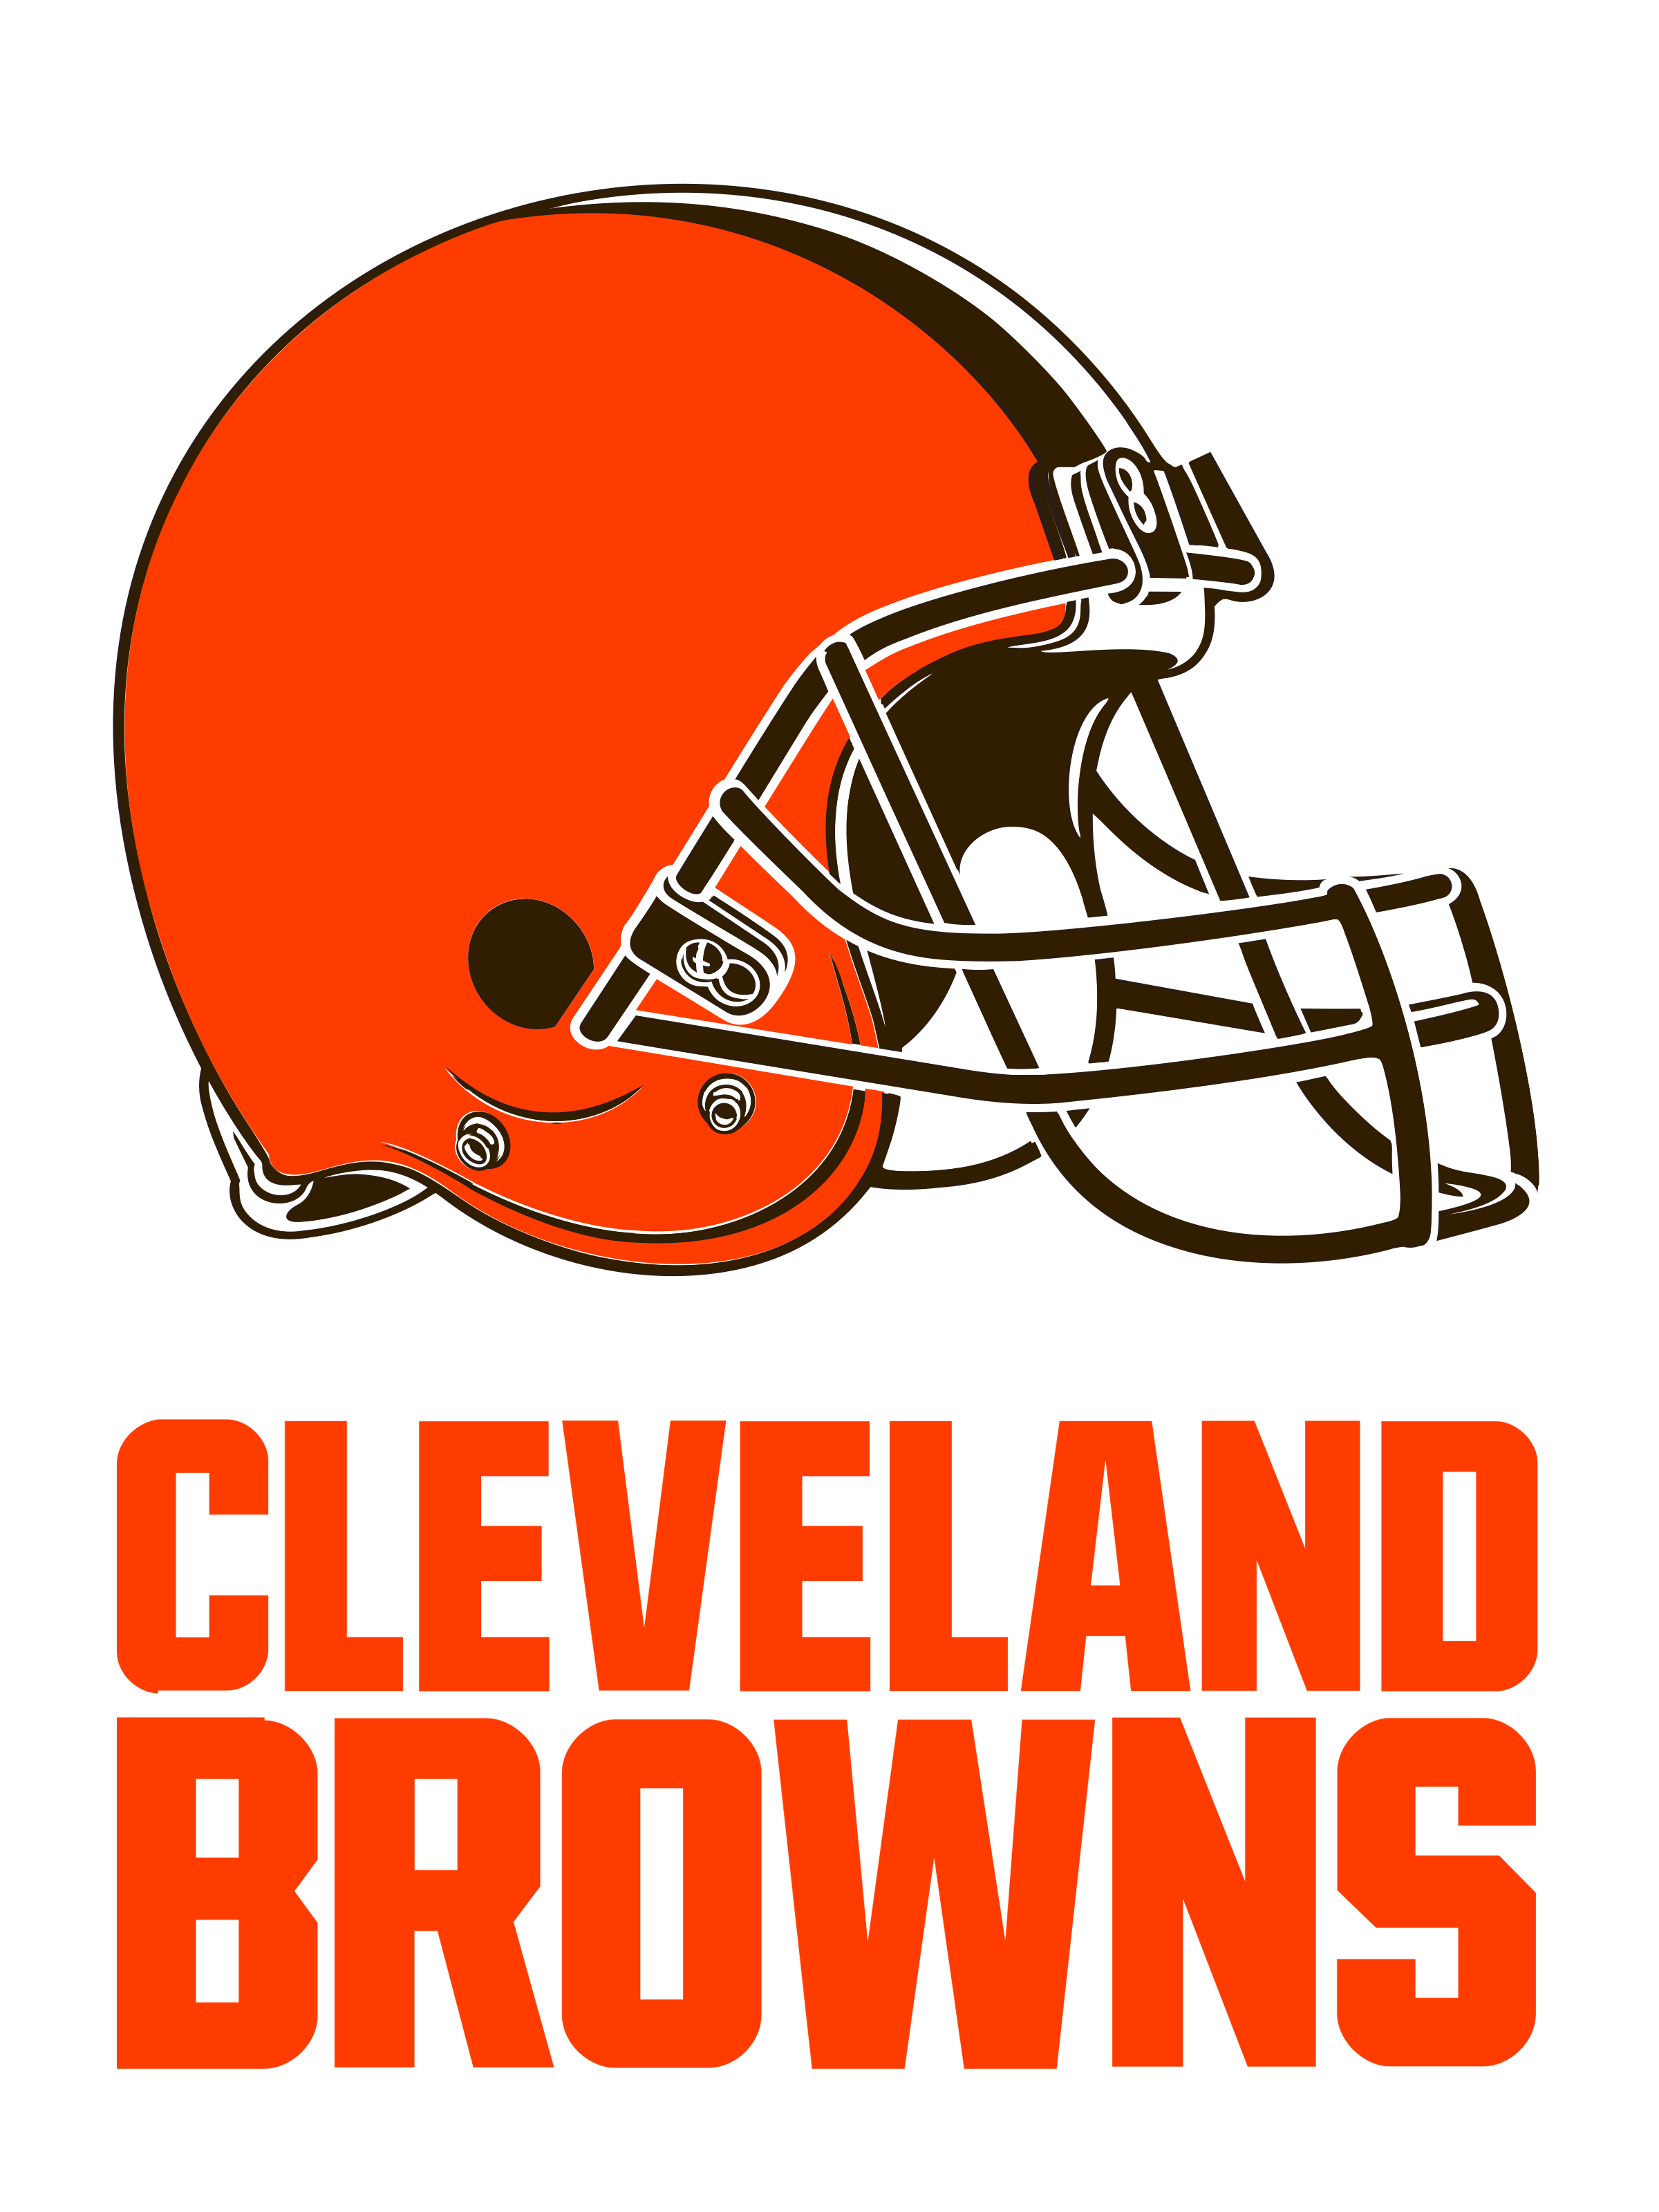 Cleveland Browns football logo - Cleveland Browns Logo PNG